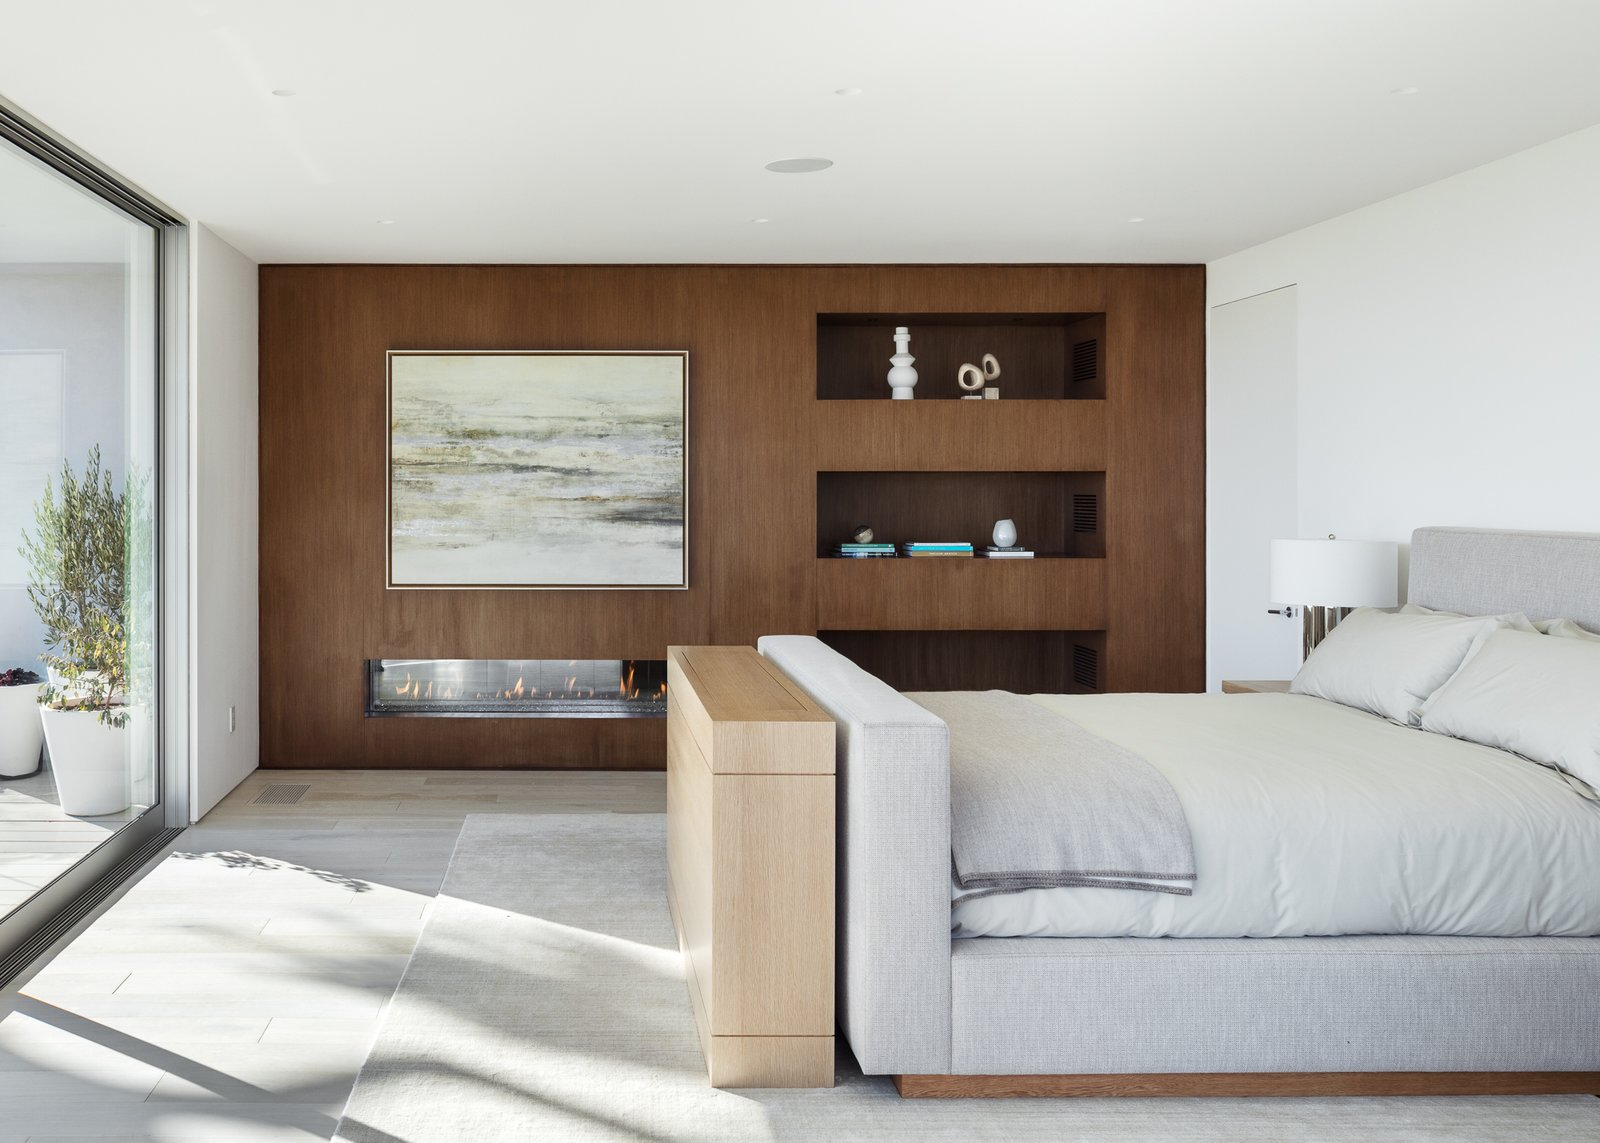 Bedroom, Bed, Accent, Bookcase, Recessed, Night Stands, Shelves, Ceiling, and Light Hardwood Master Bedroom   Best Bedroom Ceiling Shelves Photos from Minimal House One